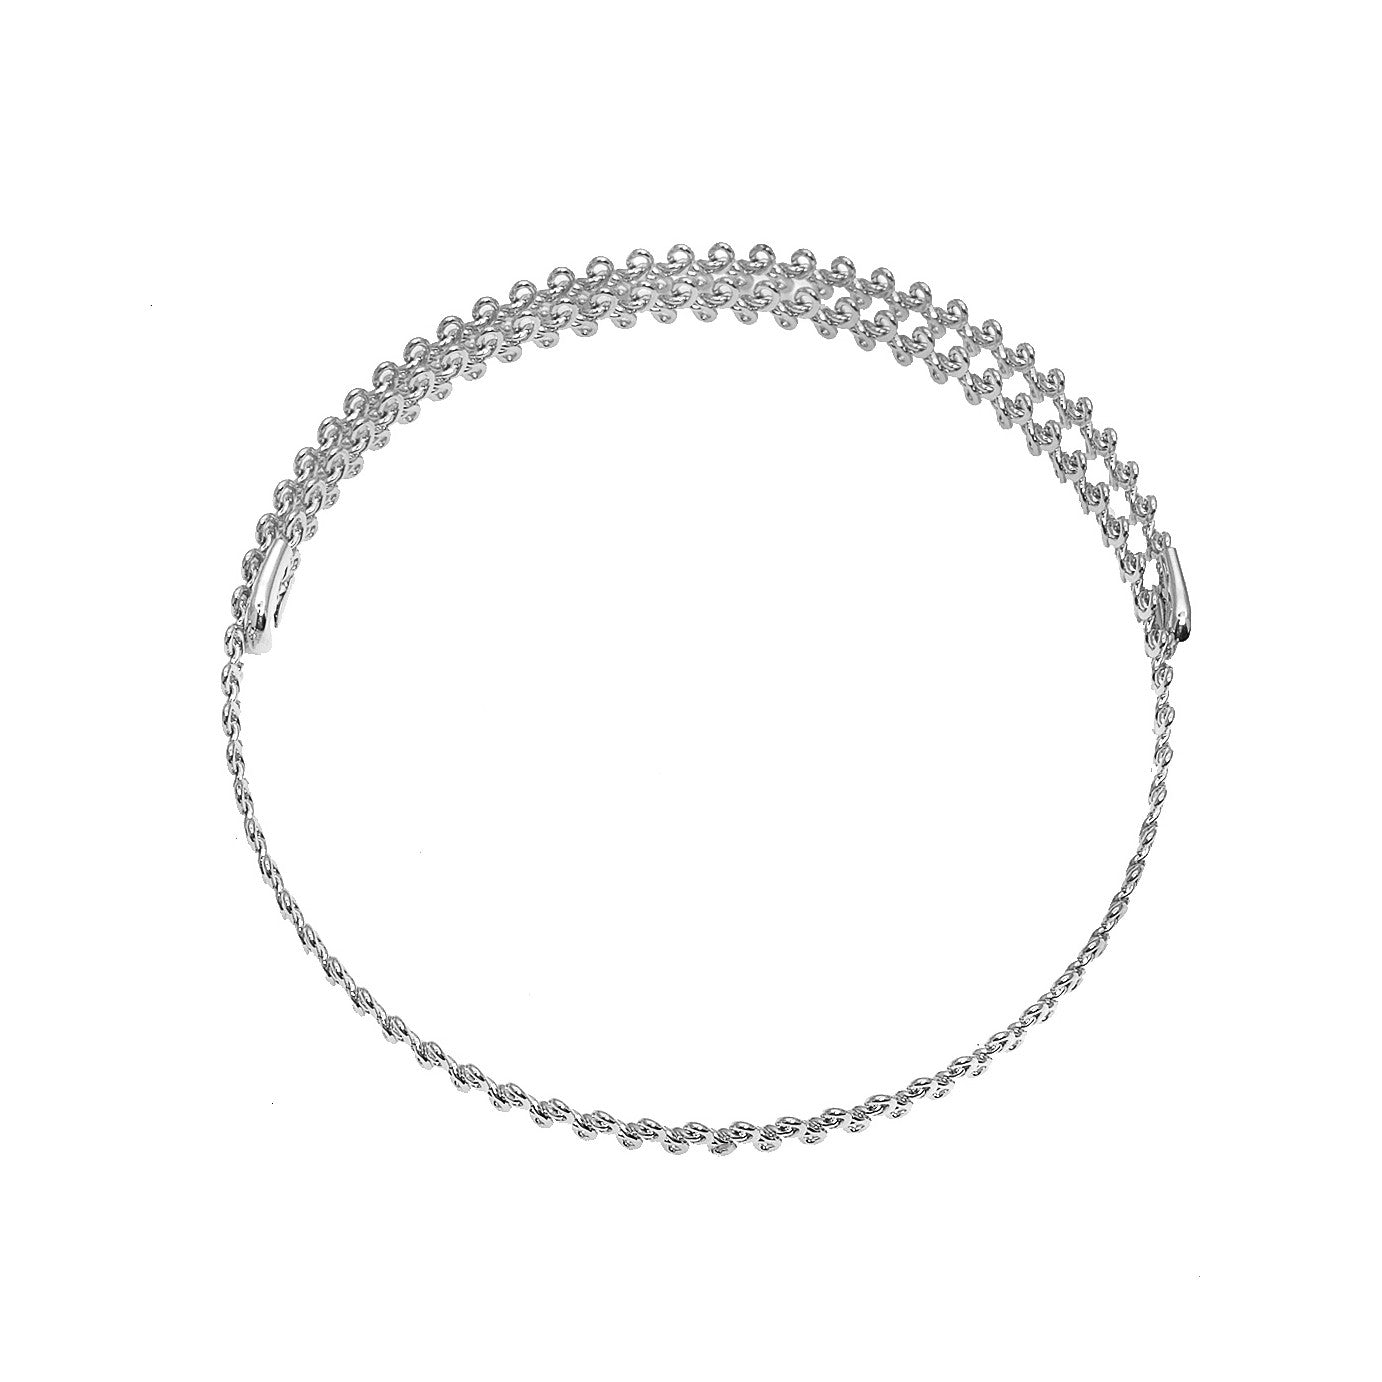 Overlapped Simple Wire Frame Choker Necklace - Spinningdaisy